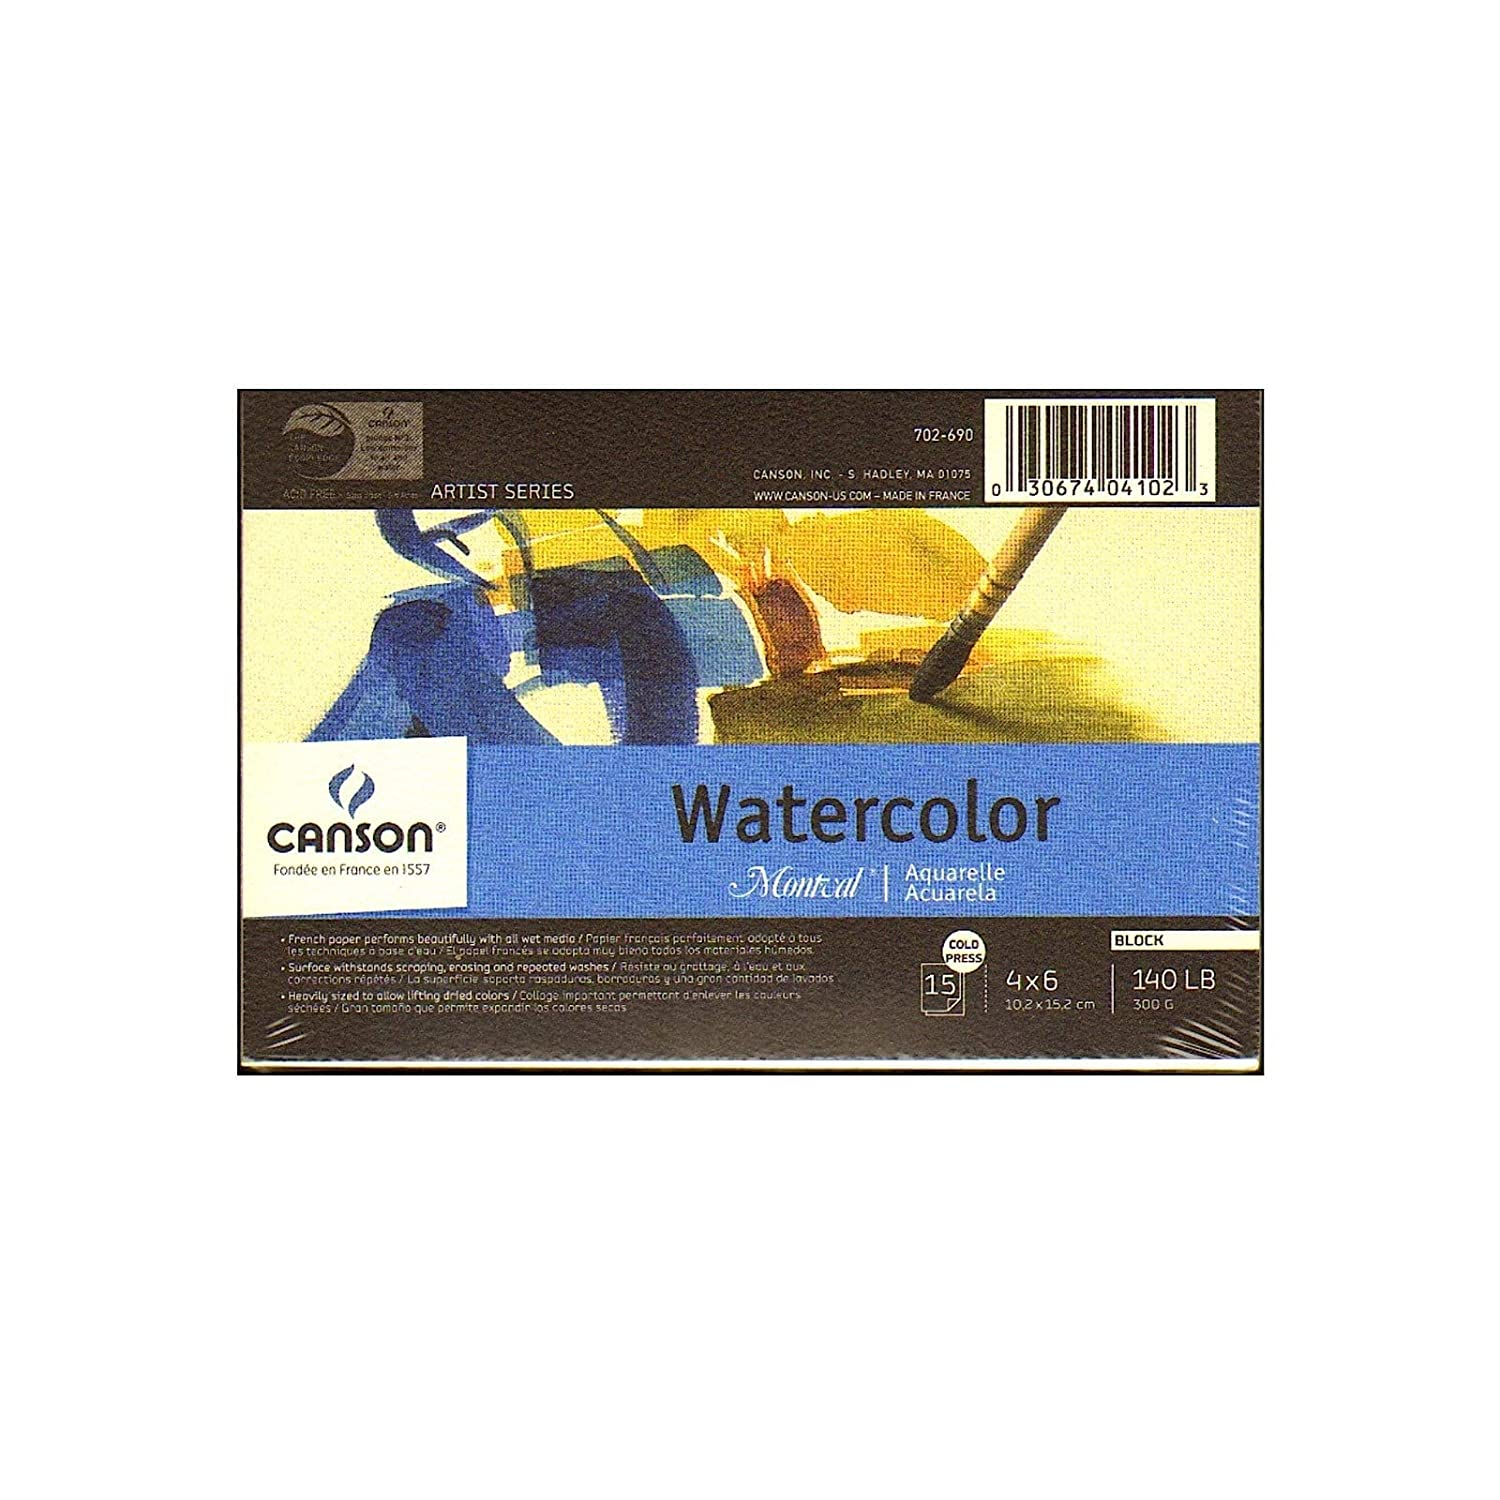 Watercolour Paper Pad 23x31cm Heritage 12 Sheets Rough Canson 300gsm